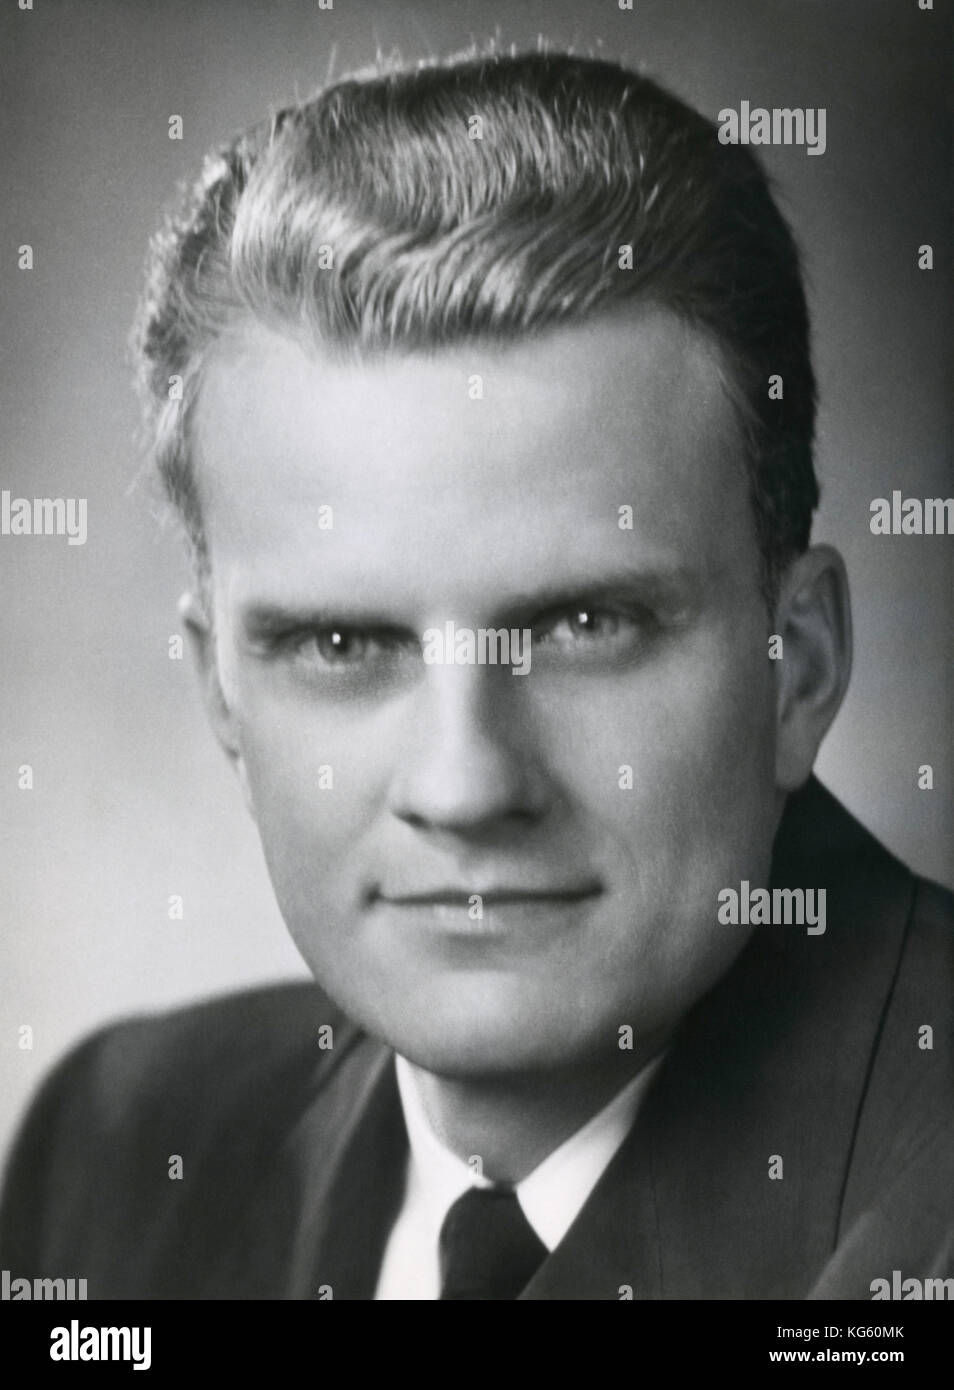 """billy graham the american evangelist American evangelist the reverend billy graham, who set crowd records on his """"southern cross crusade to australia"""", has died at his home in north carolina at the age of 99."""